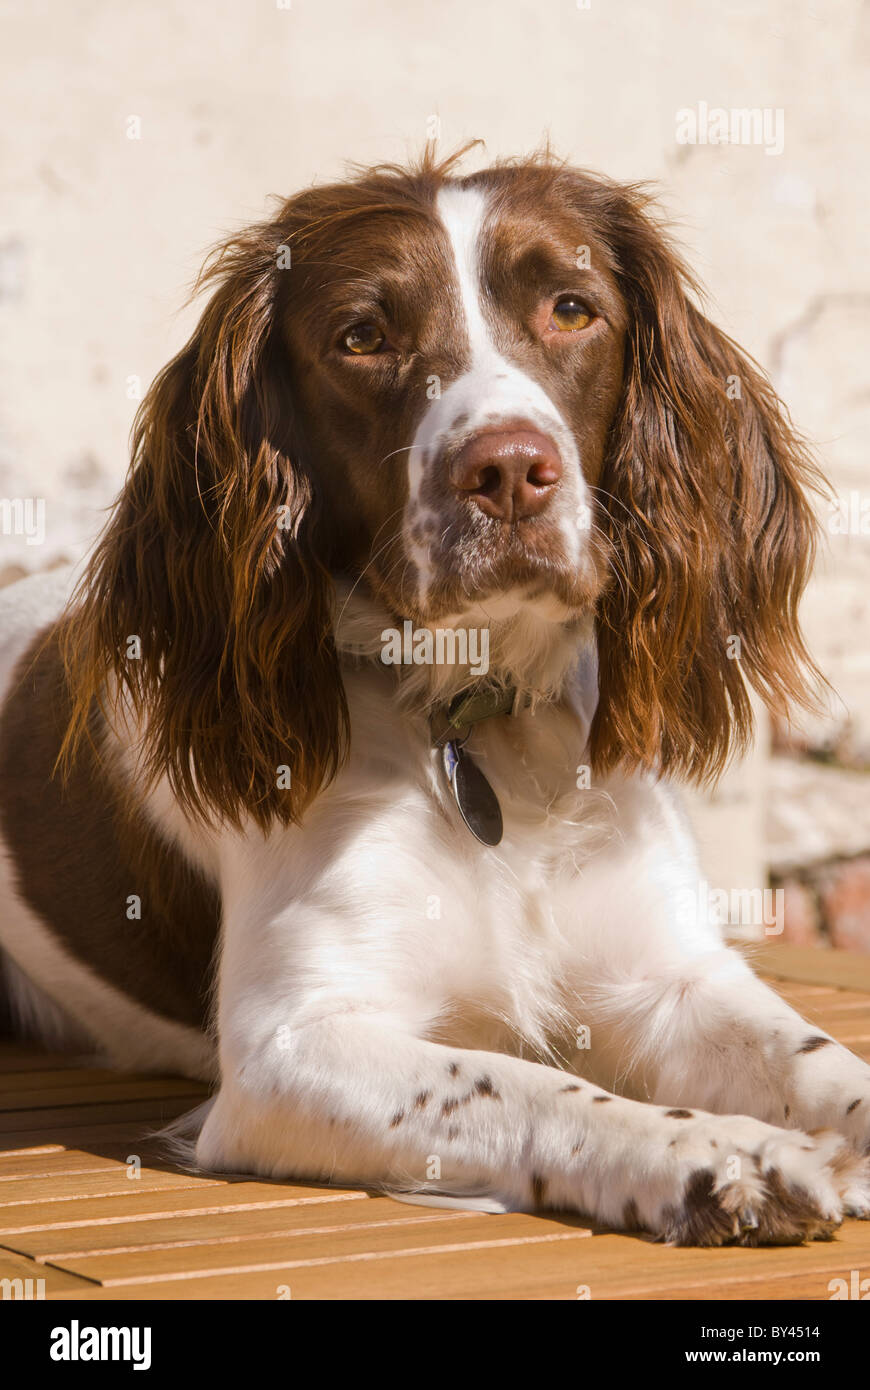 english springer spaniel liver or brown and white young female or